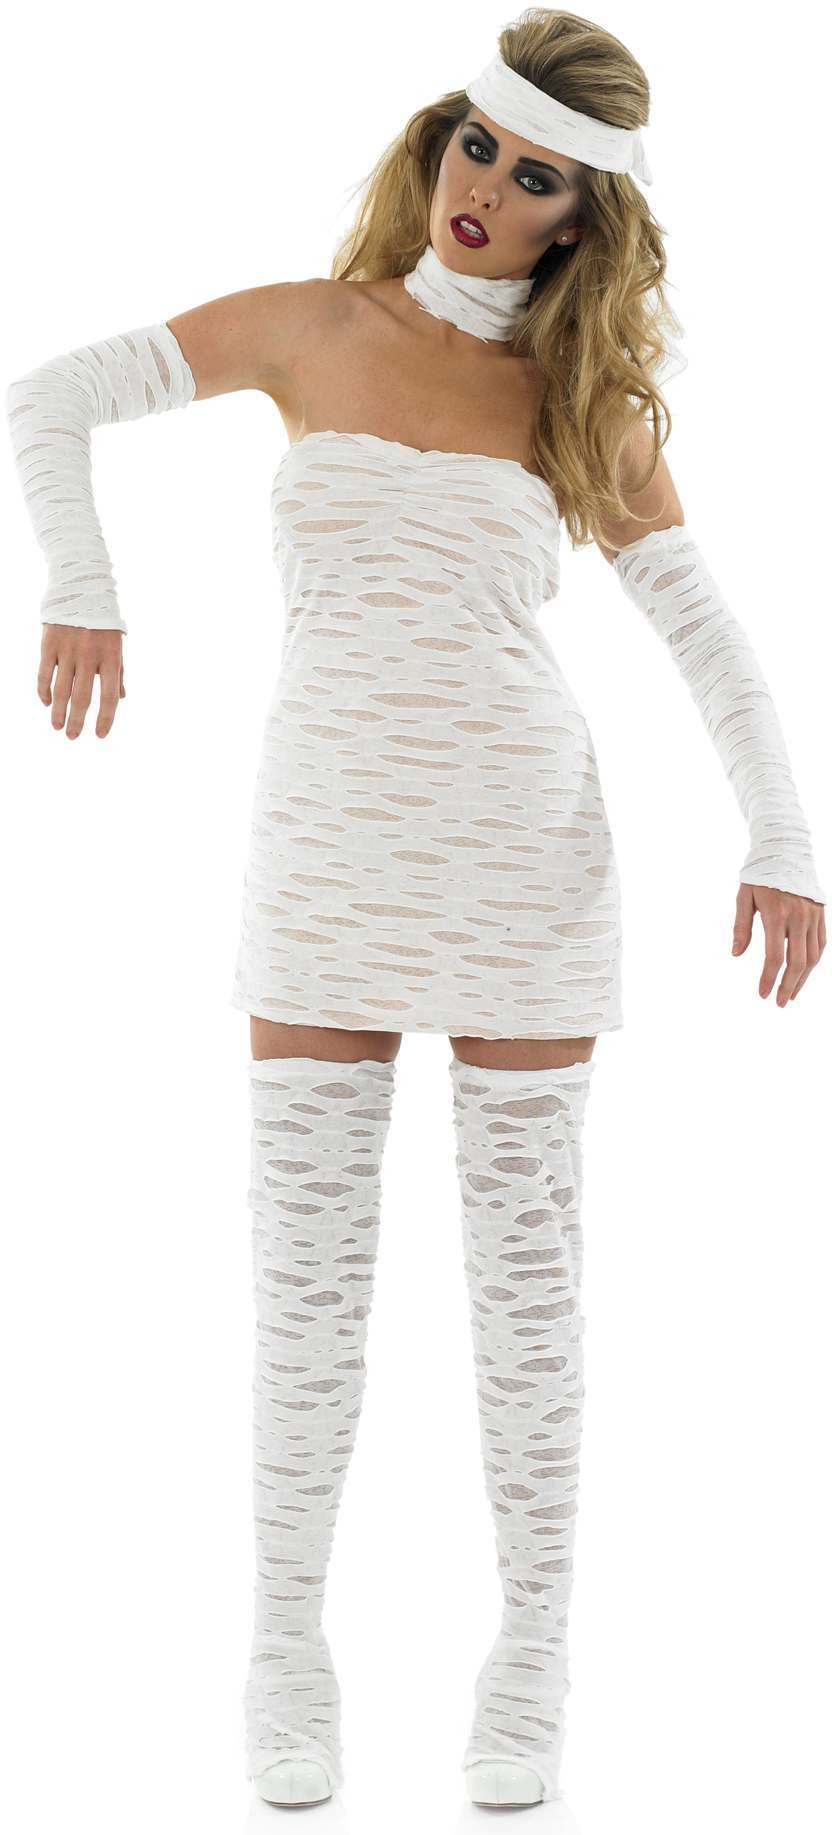 Ladies White (Sexy Mummy)Fancy Dress Costume